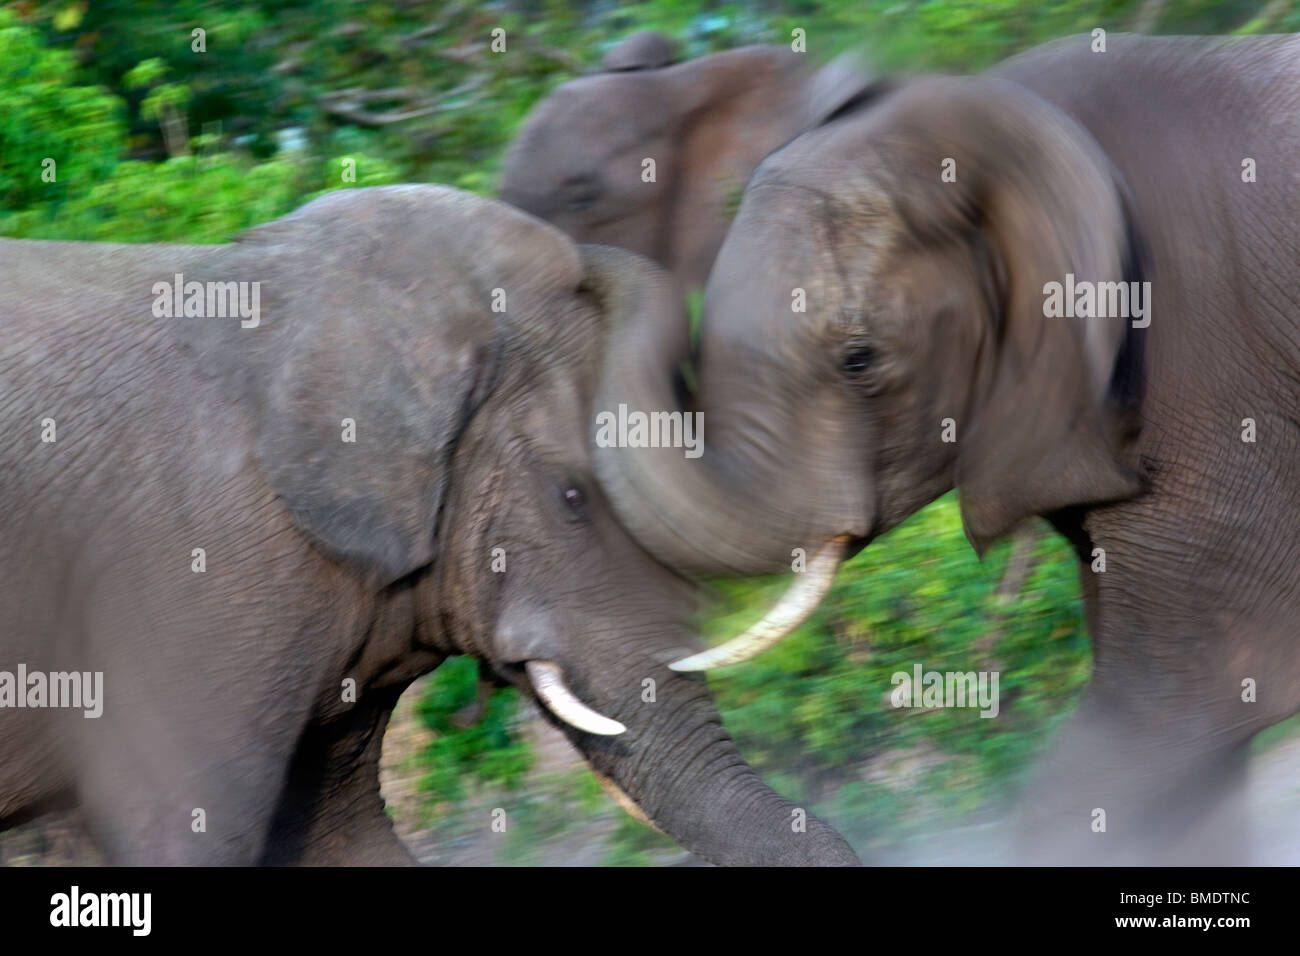 Two African Bull Elephants fighting (Loxodonta africana) in Chobe National Park in Botswana. - Stock Image